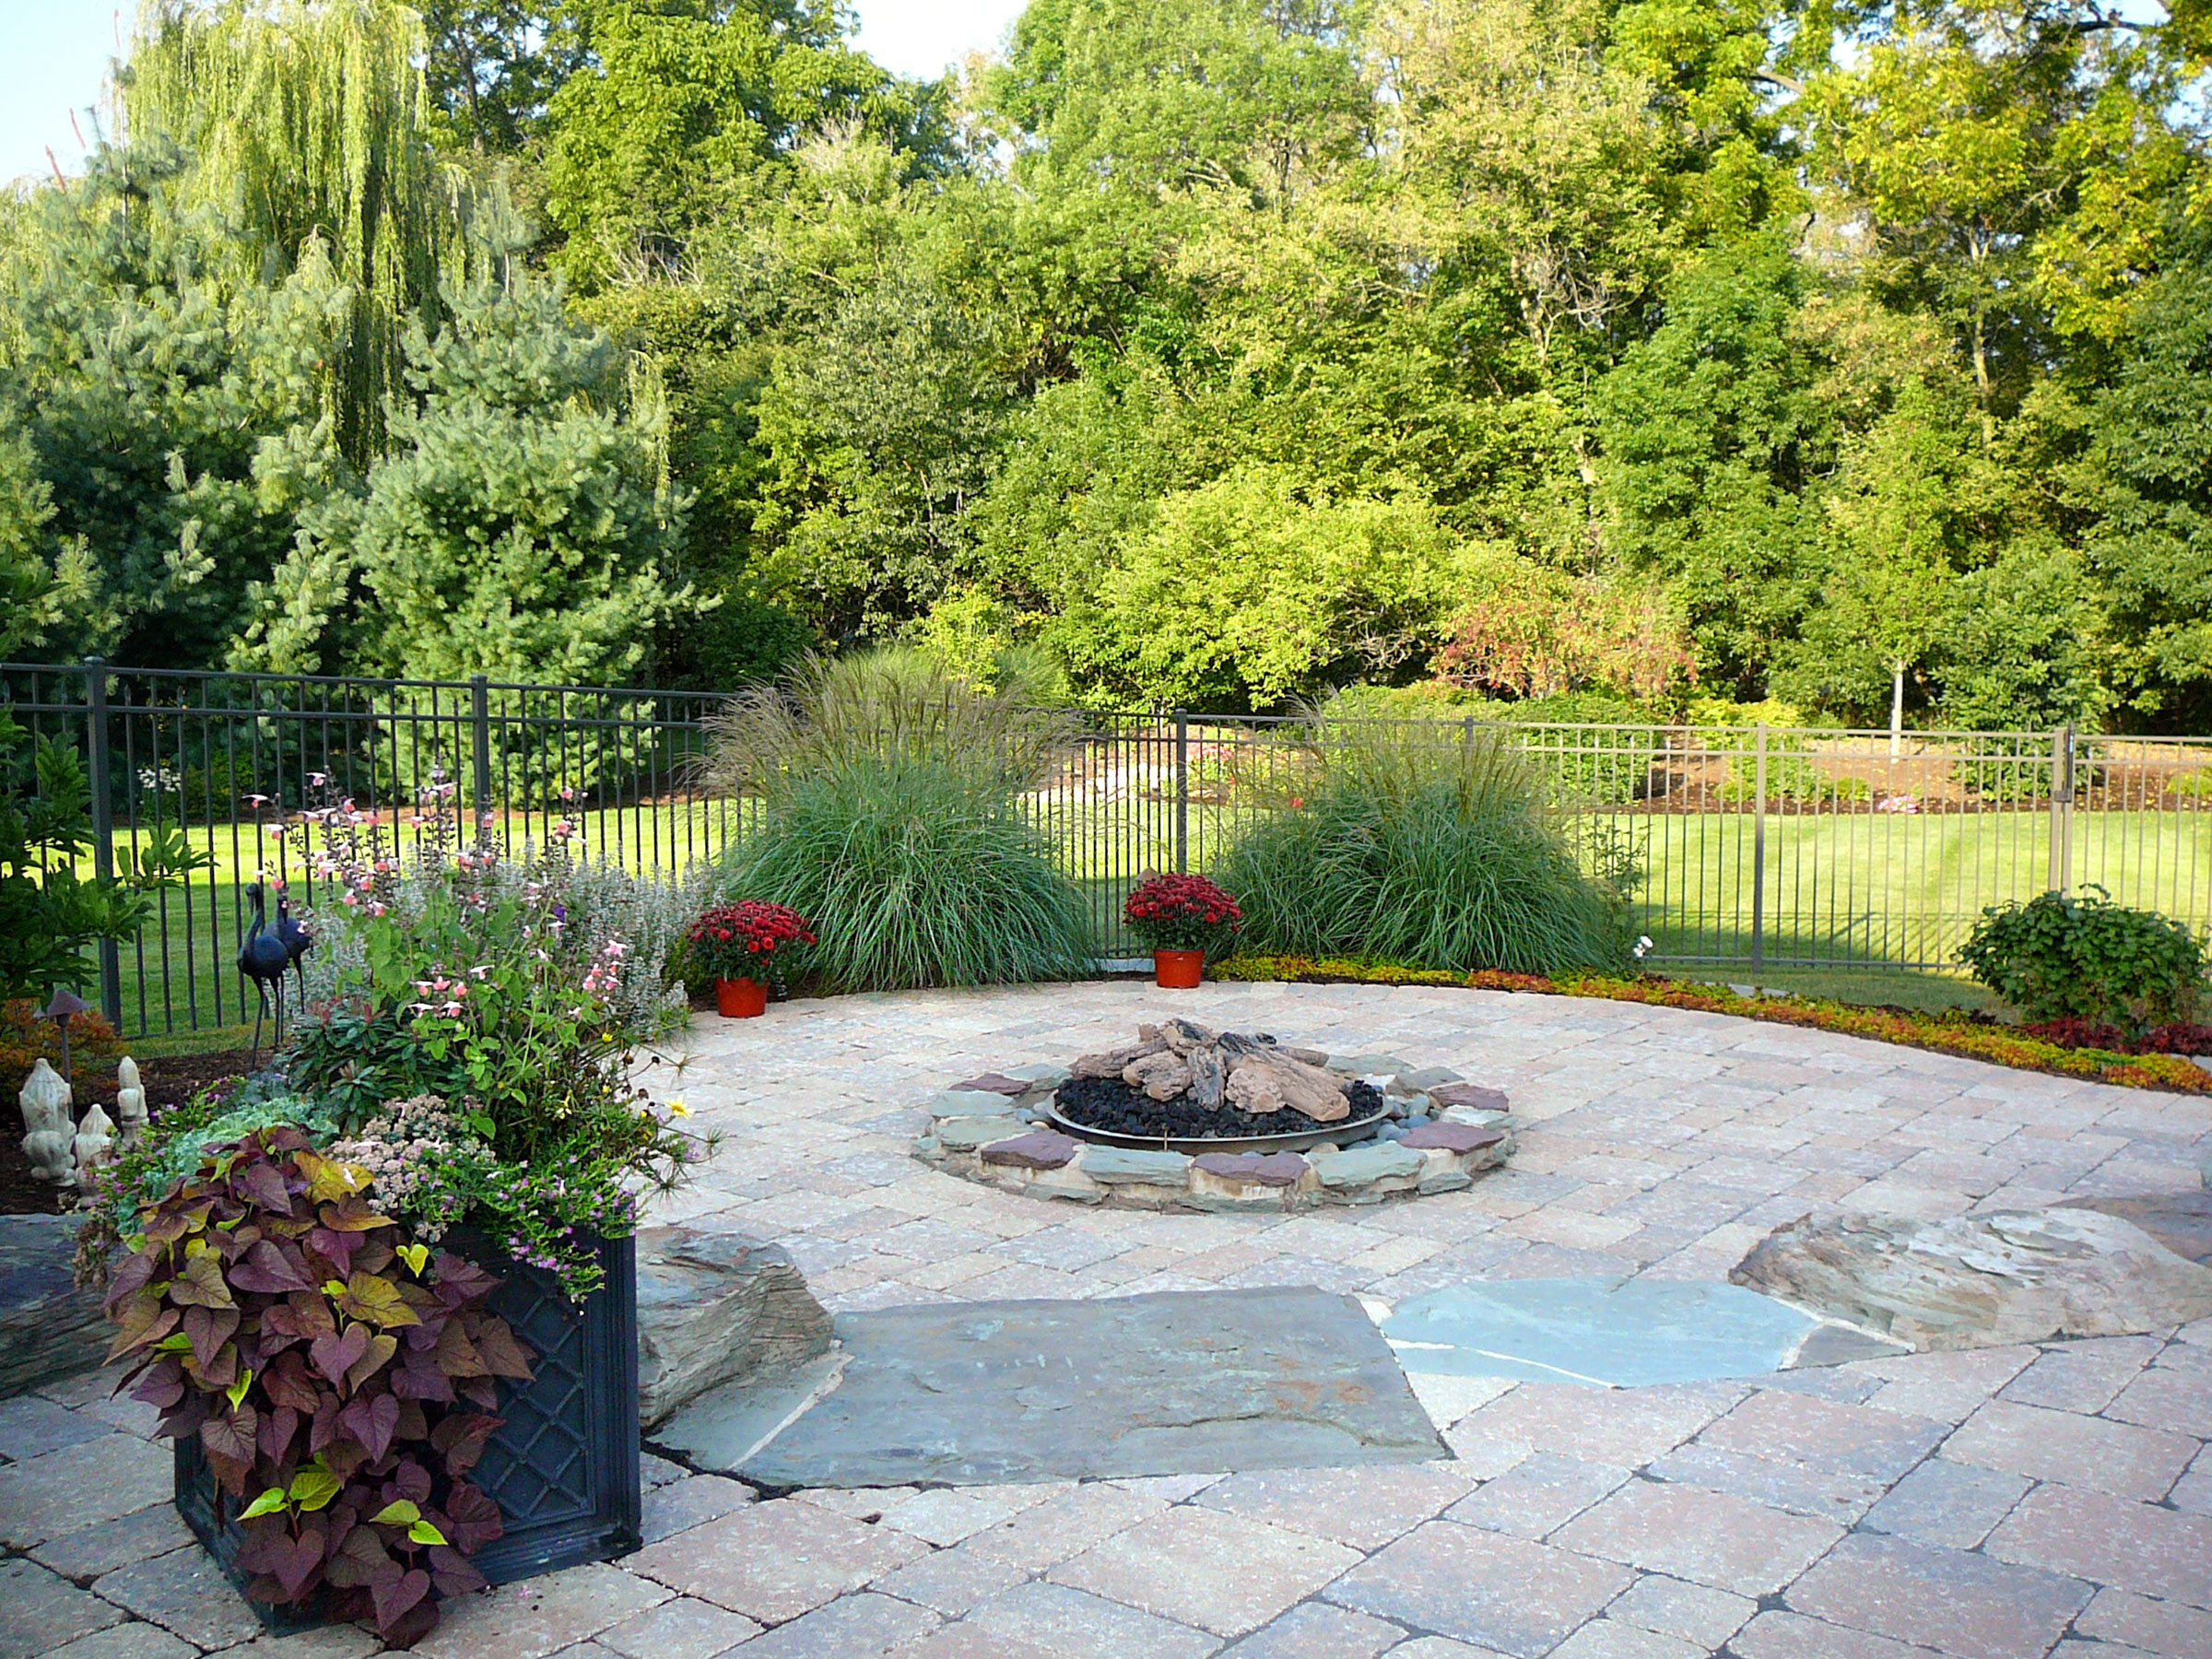 The firepit will be enjoyed well into the autumn months